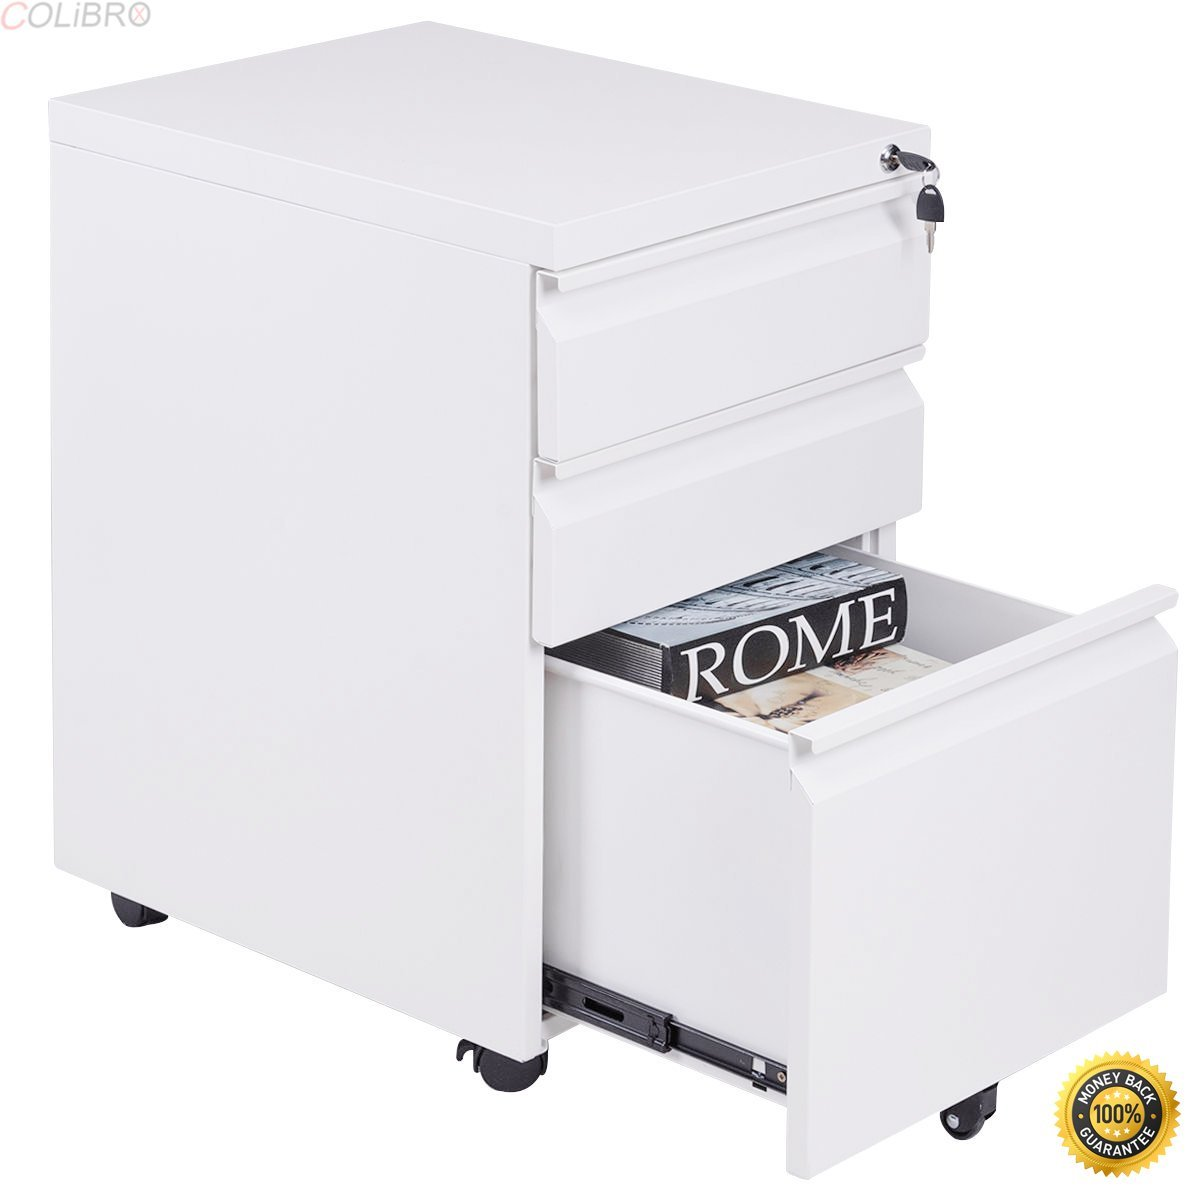 COLIBROX--File Cabinet Rolling Mobile A4 Drawers Pedestal Storage Steel Home Office White,cheap file cabinets,metal file cabinets,3 drawer lateral file cabinet,new rolling mobile file storage cabinet